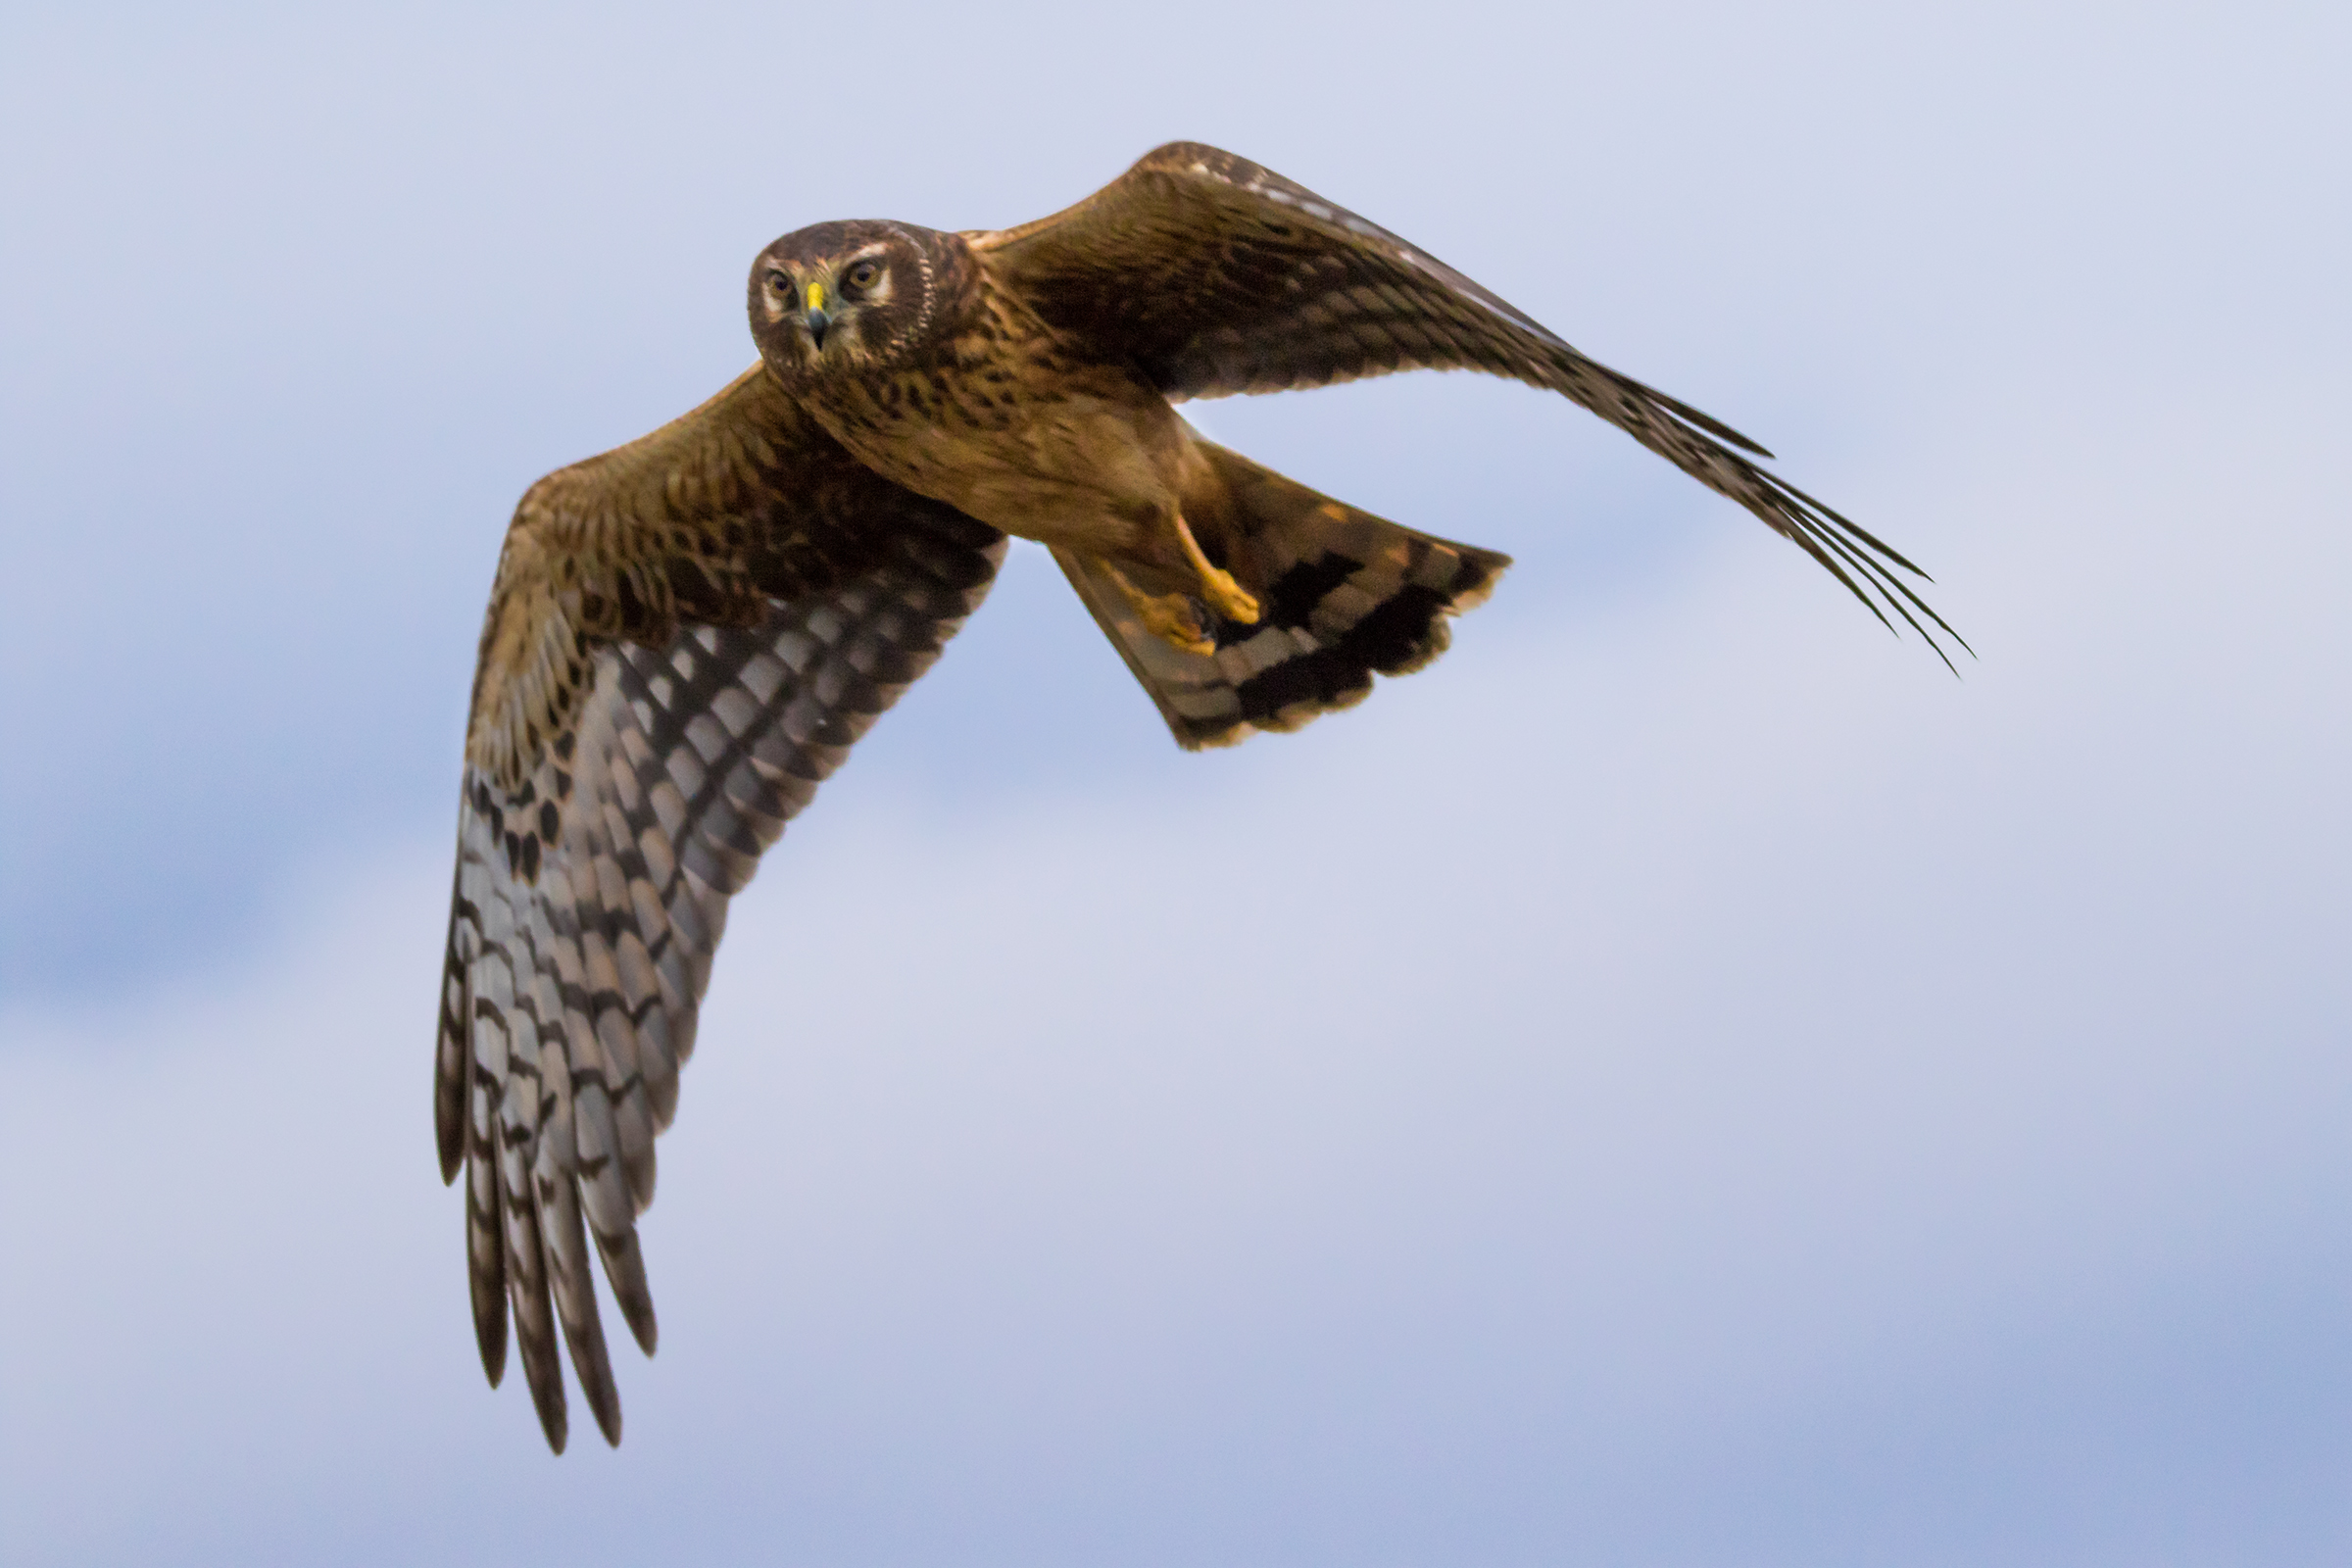 Hawks, Harriers, And Other Birds